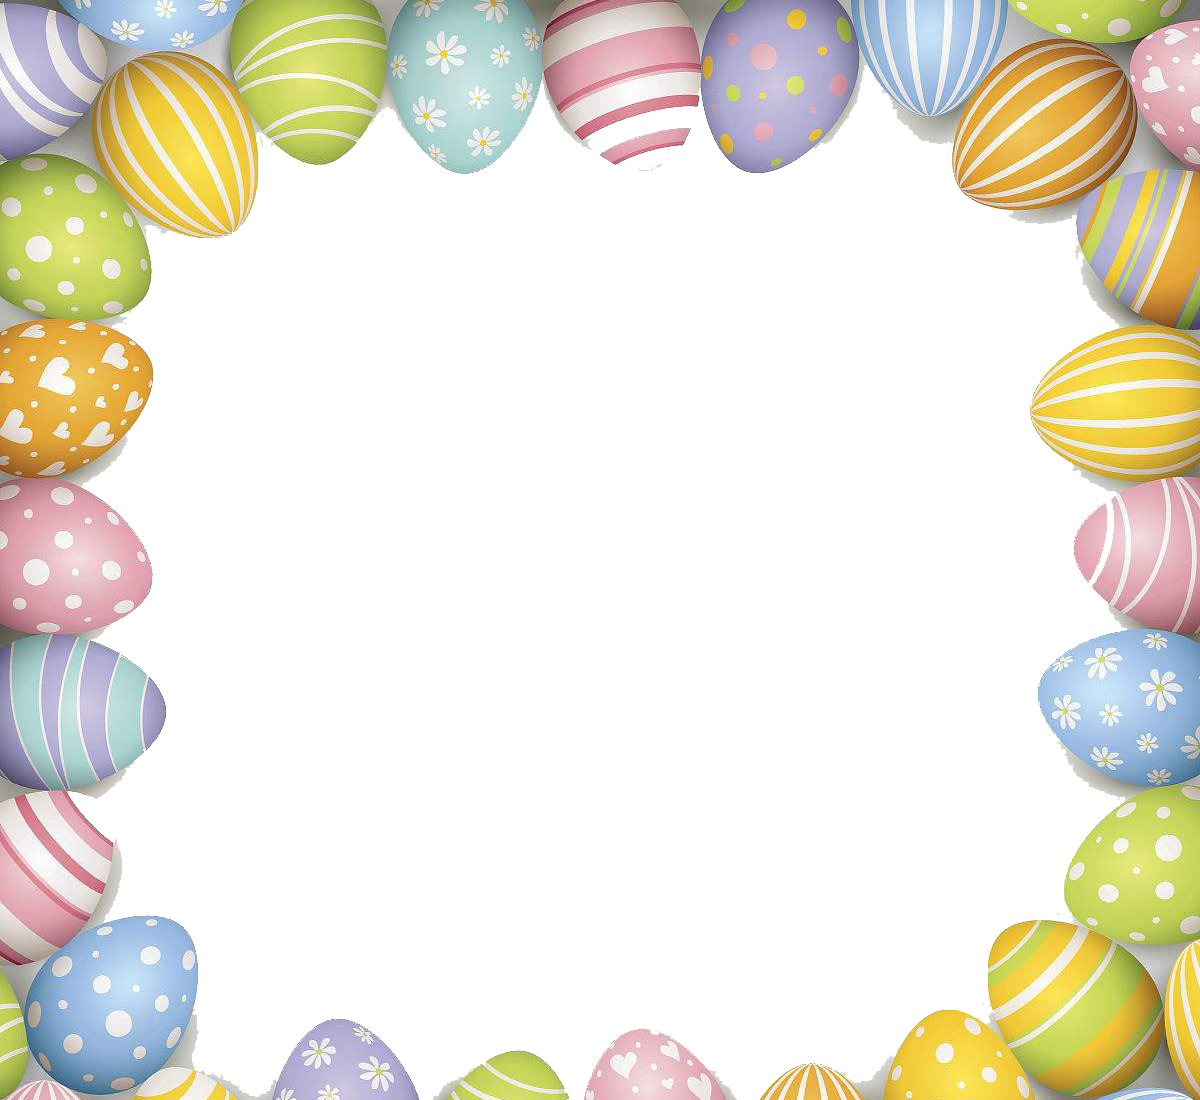 Easter border png. Bunny red egg illustration